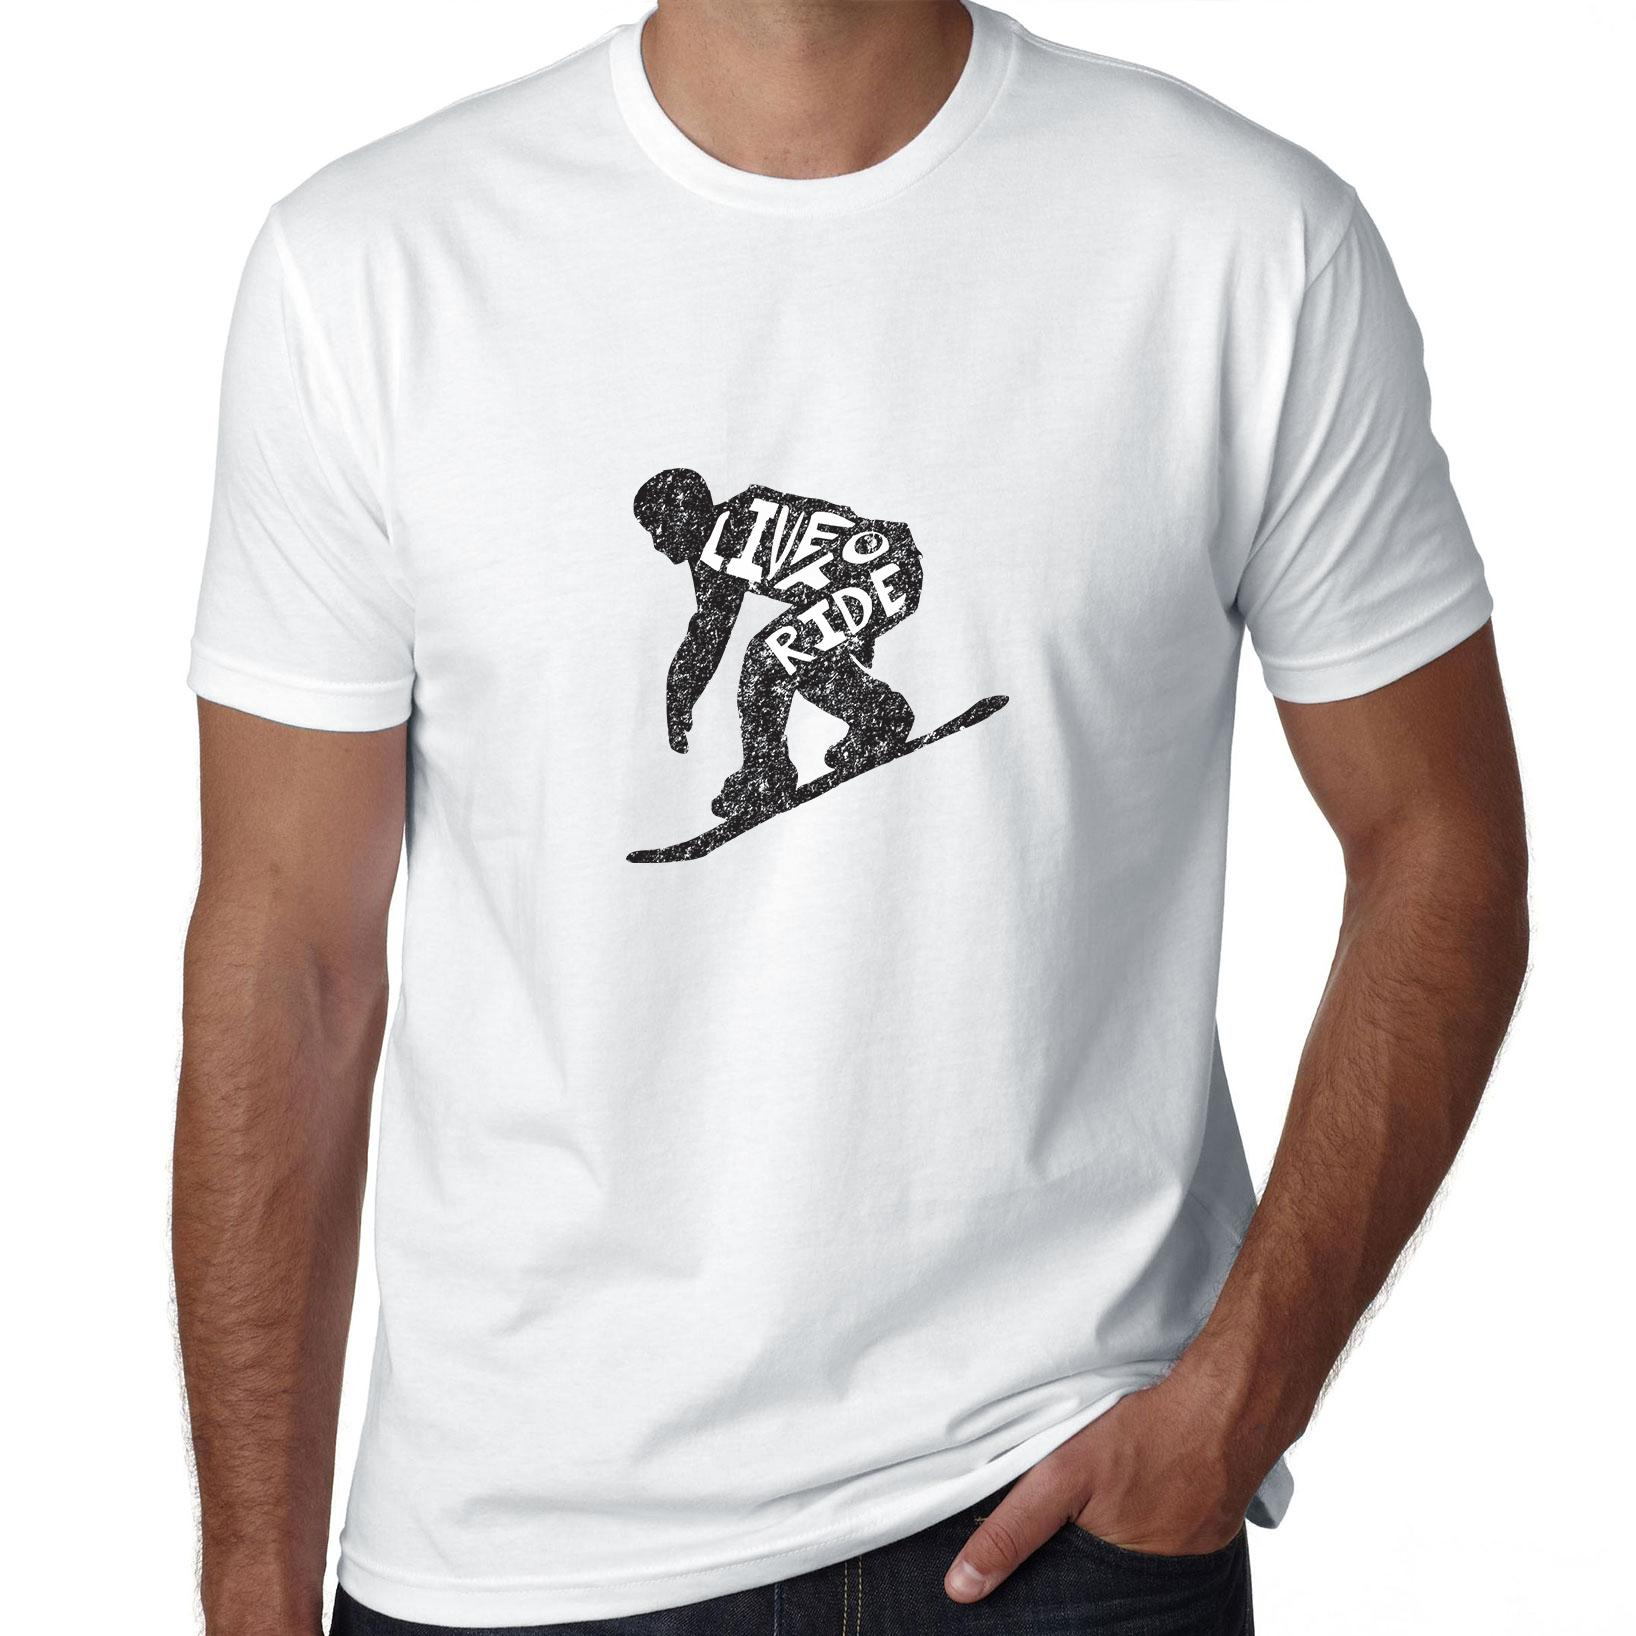 Trendy Snowboard Live to Ride Silhouette Skiing Men's T-Shirt by Hollywood Thread